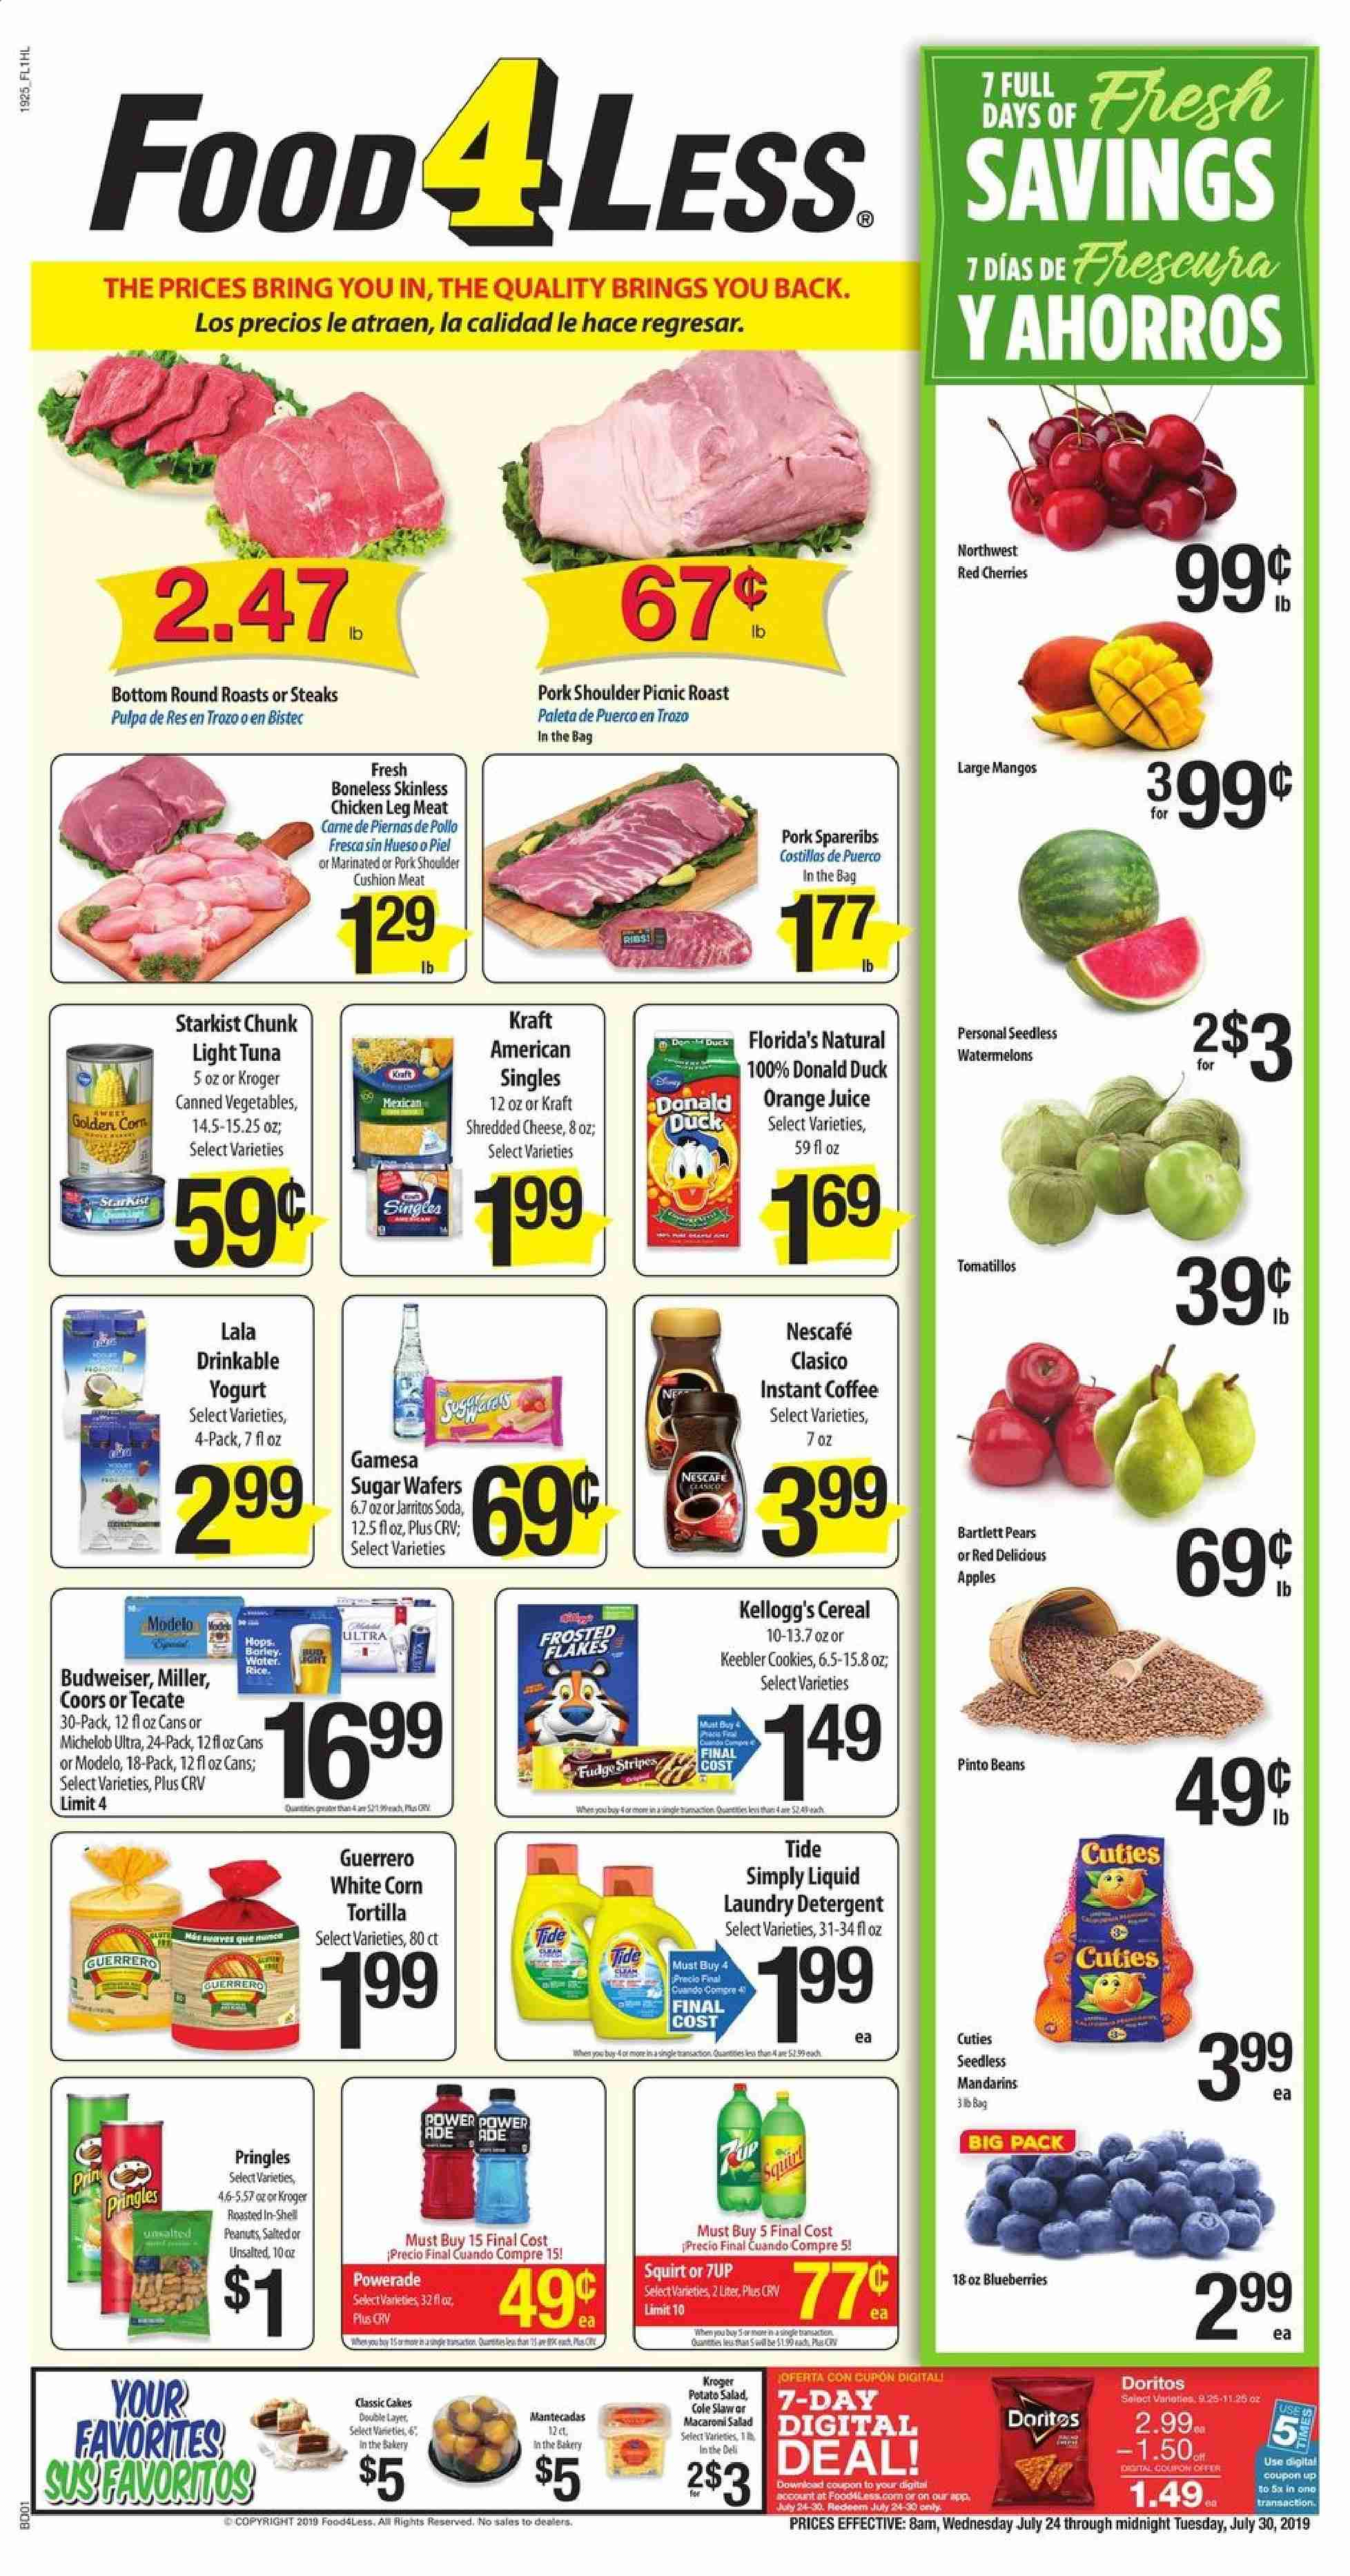 Food 4 Less Flyer - 07.24.2019 - 07.30.2019 - Sales products - Budweiser, Coors, Michelob, cushion, corn, apples, Bartlett pears, blueberries, mango, Red Delicious, cherries, pears, orange, cake, tuna, salad, shredded cheese, cheese, beans, cookies, Fudge, wafers, Doritos, Pringles, sugar, canned vegetables, light tuna, barley, cereals, rice, pinto beans, peanuts, Powerade, orange juice, soda, juice, instant coffee, Nescafé, chicken, pork meat, pork shoulder, detergent, Tide, laundry detergent, Shell, ribs. Page 1.